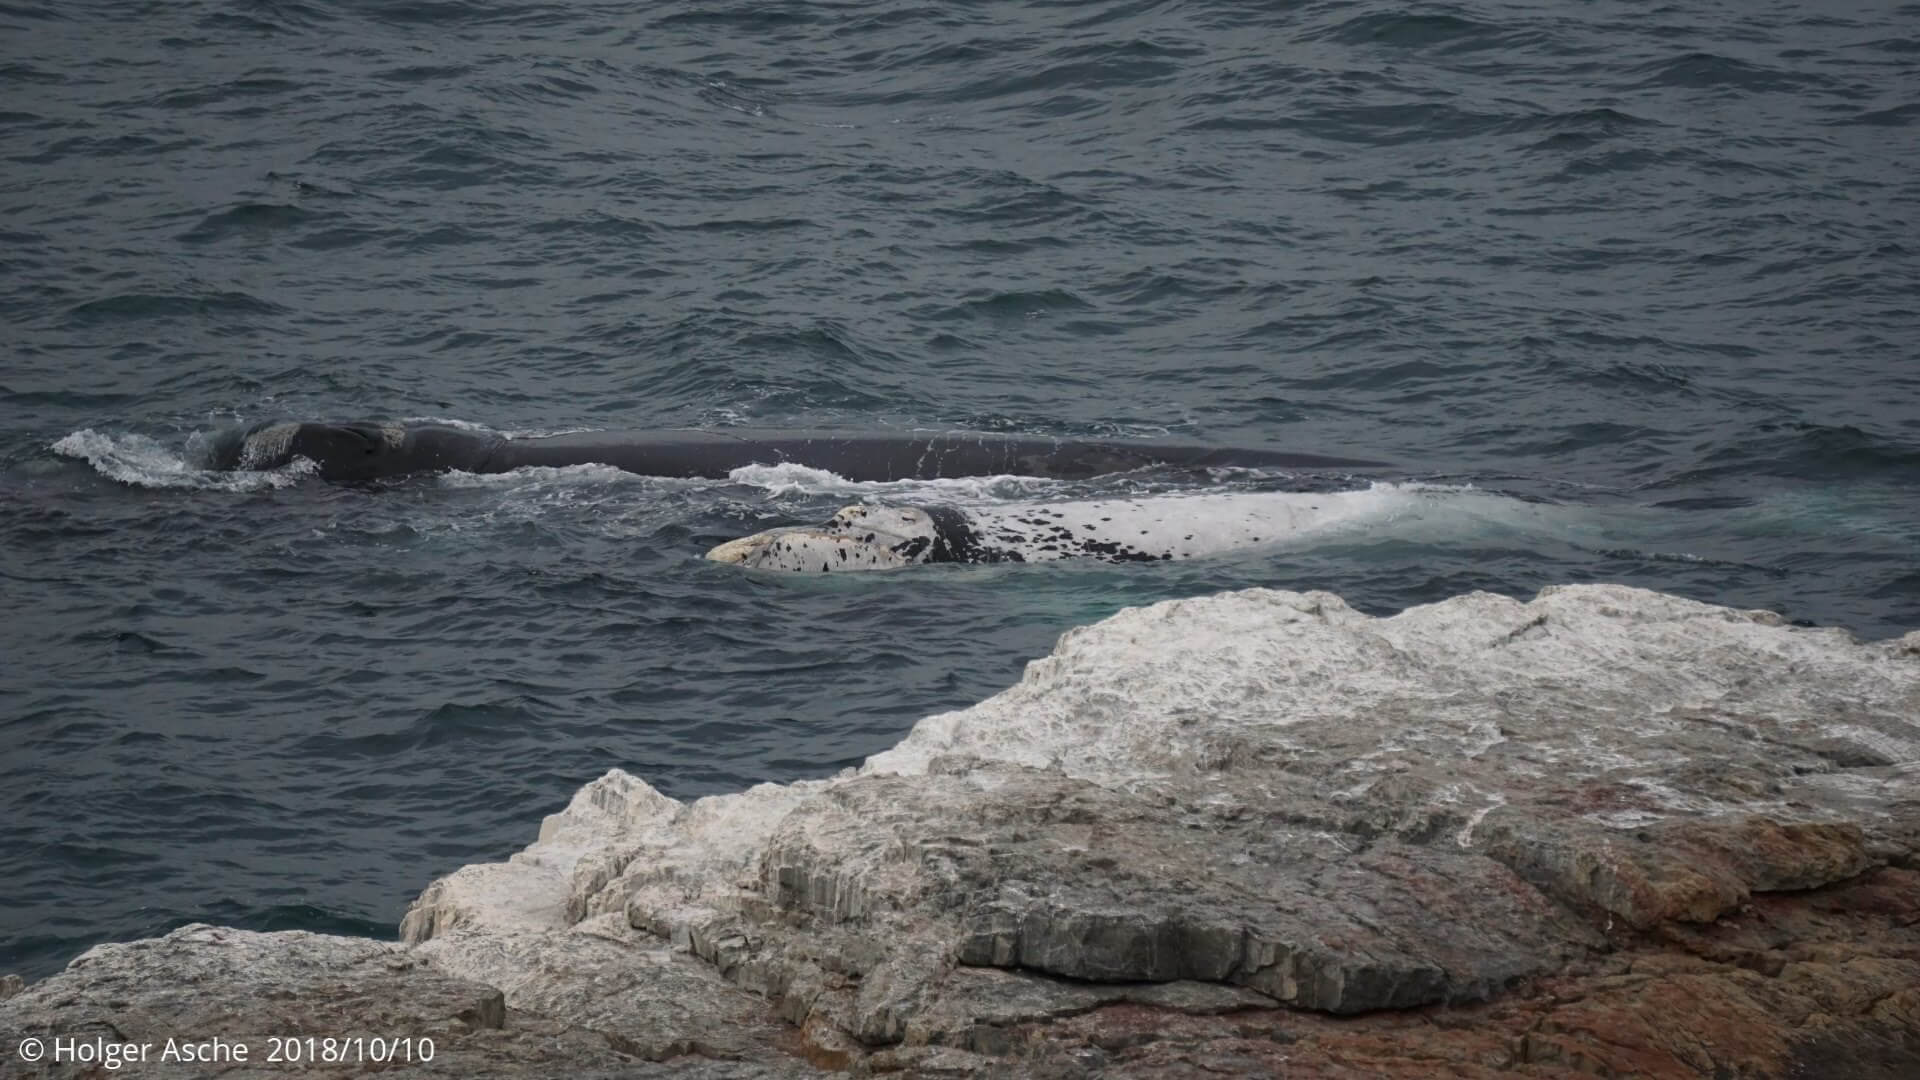 Mother whale with white youth, Hermanus, South Africa